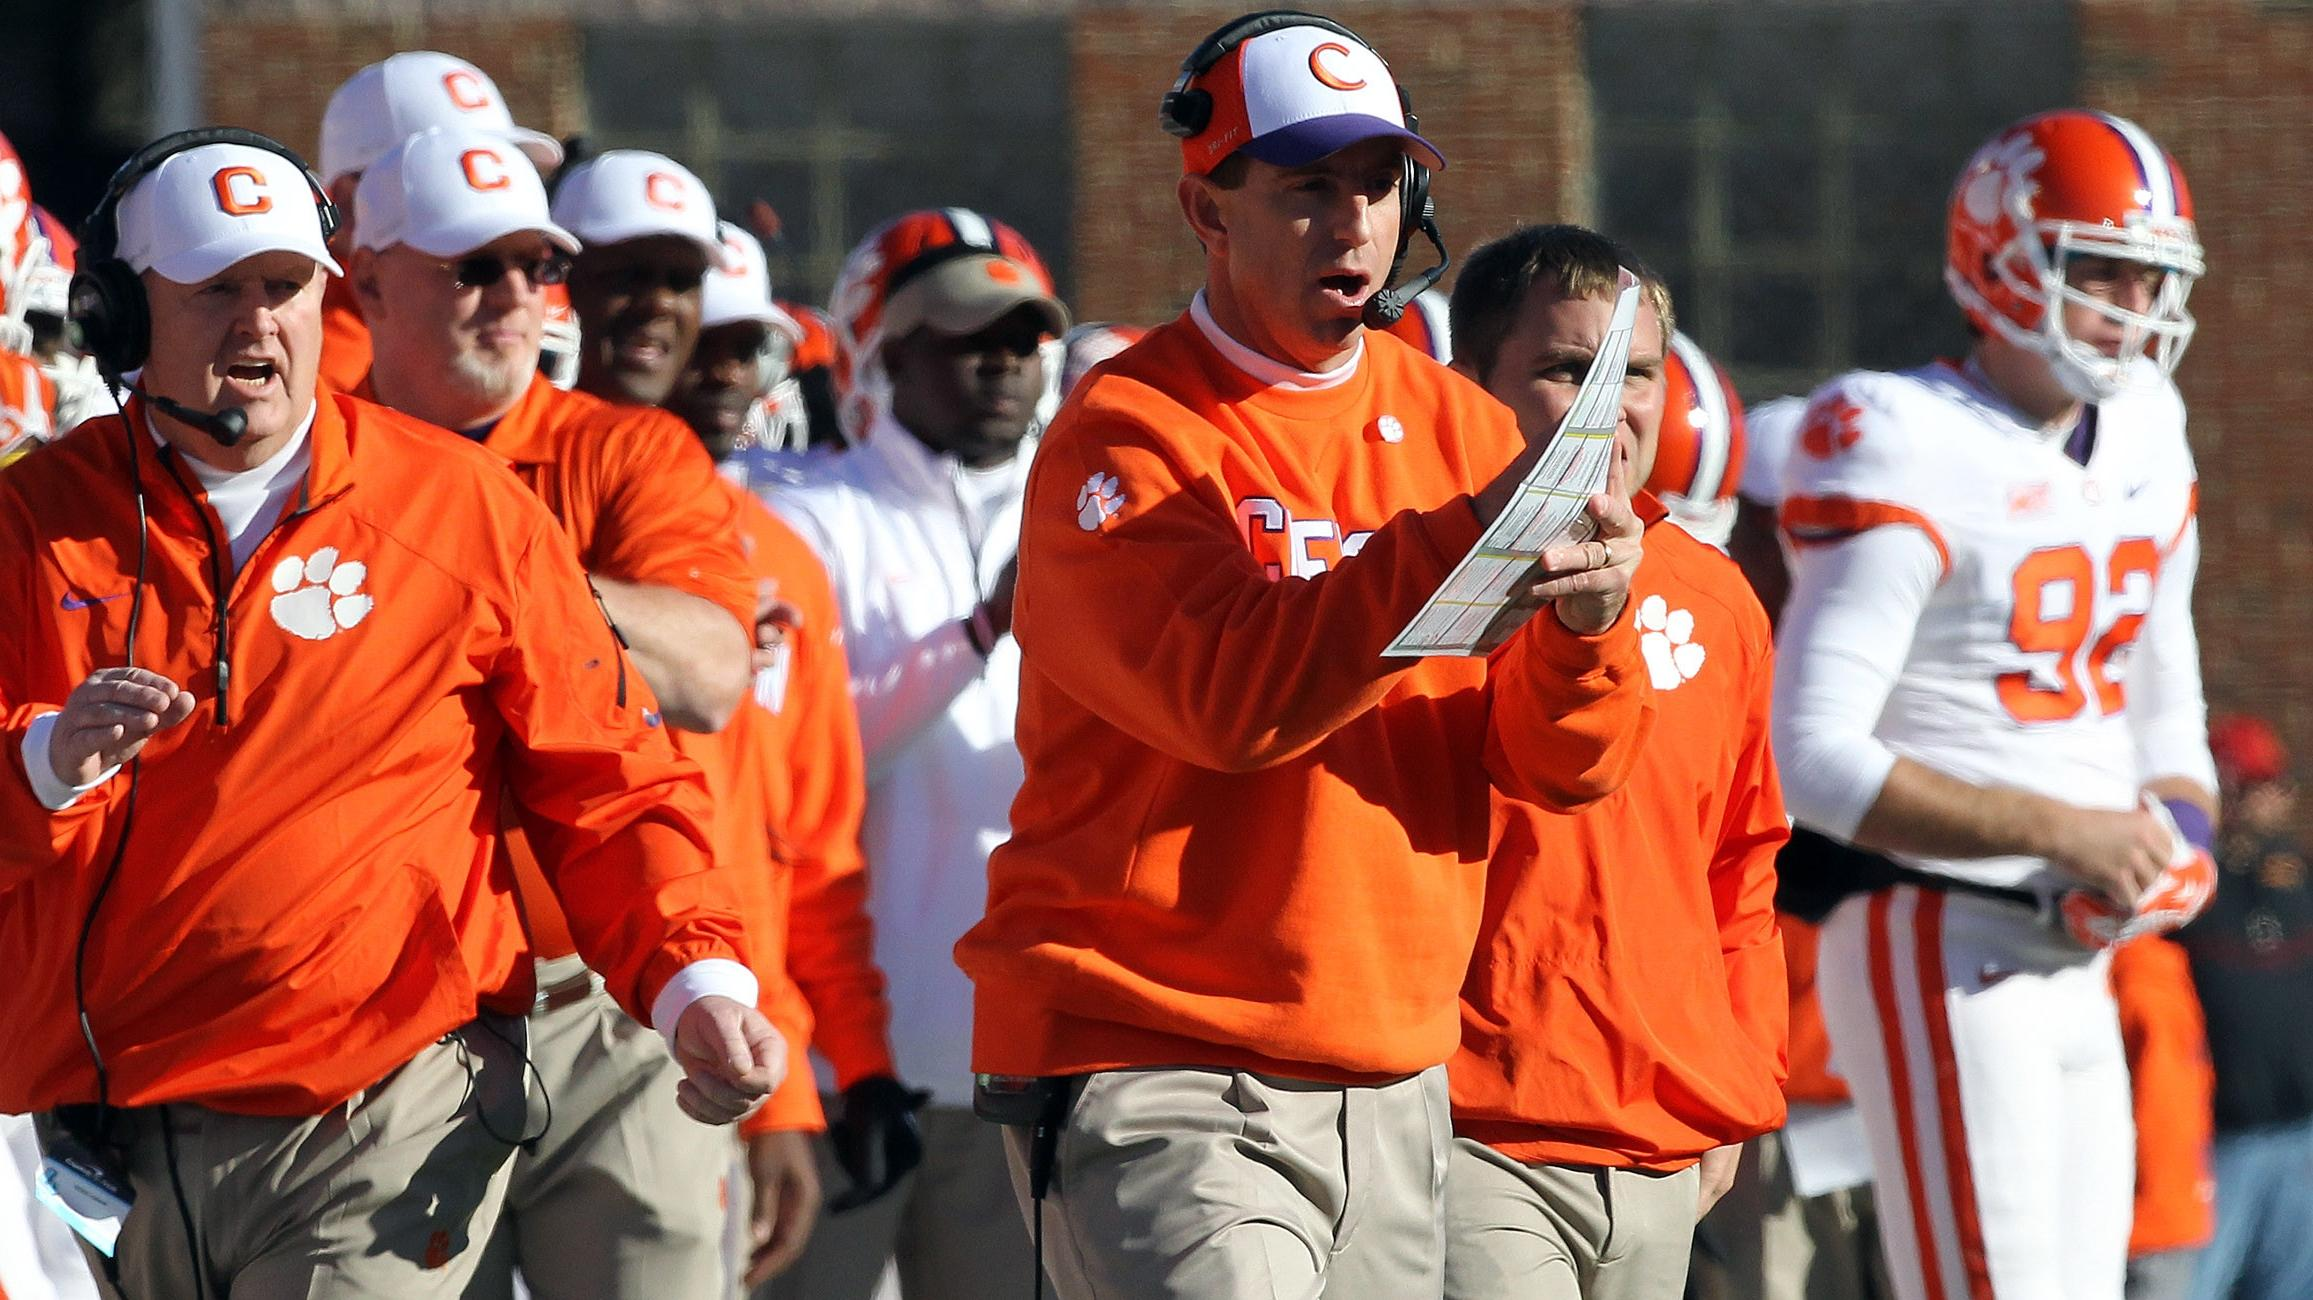 EXCLUSIVE: Swinney: 'Best is yet to come for Tigers'